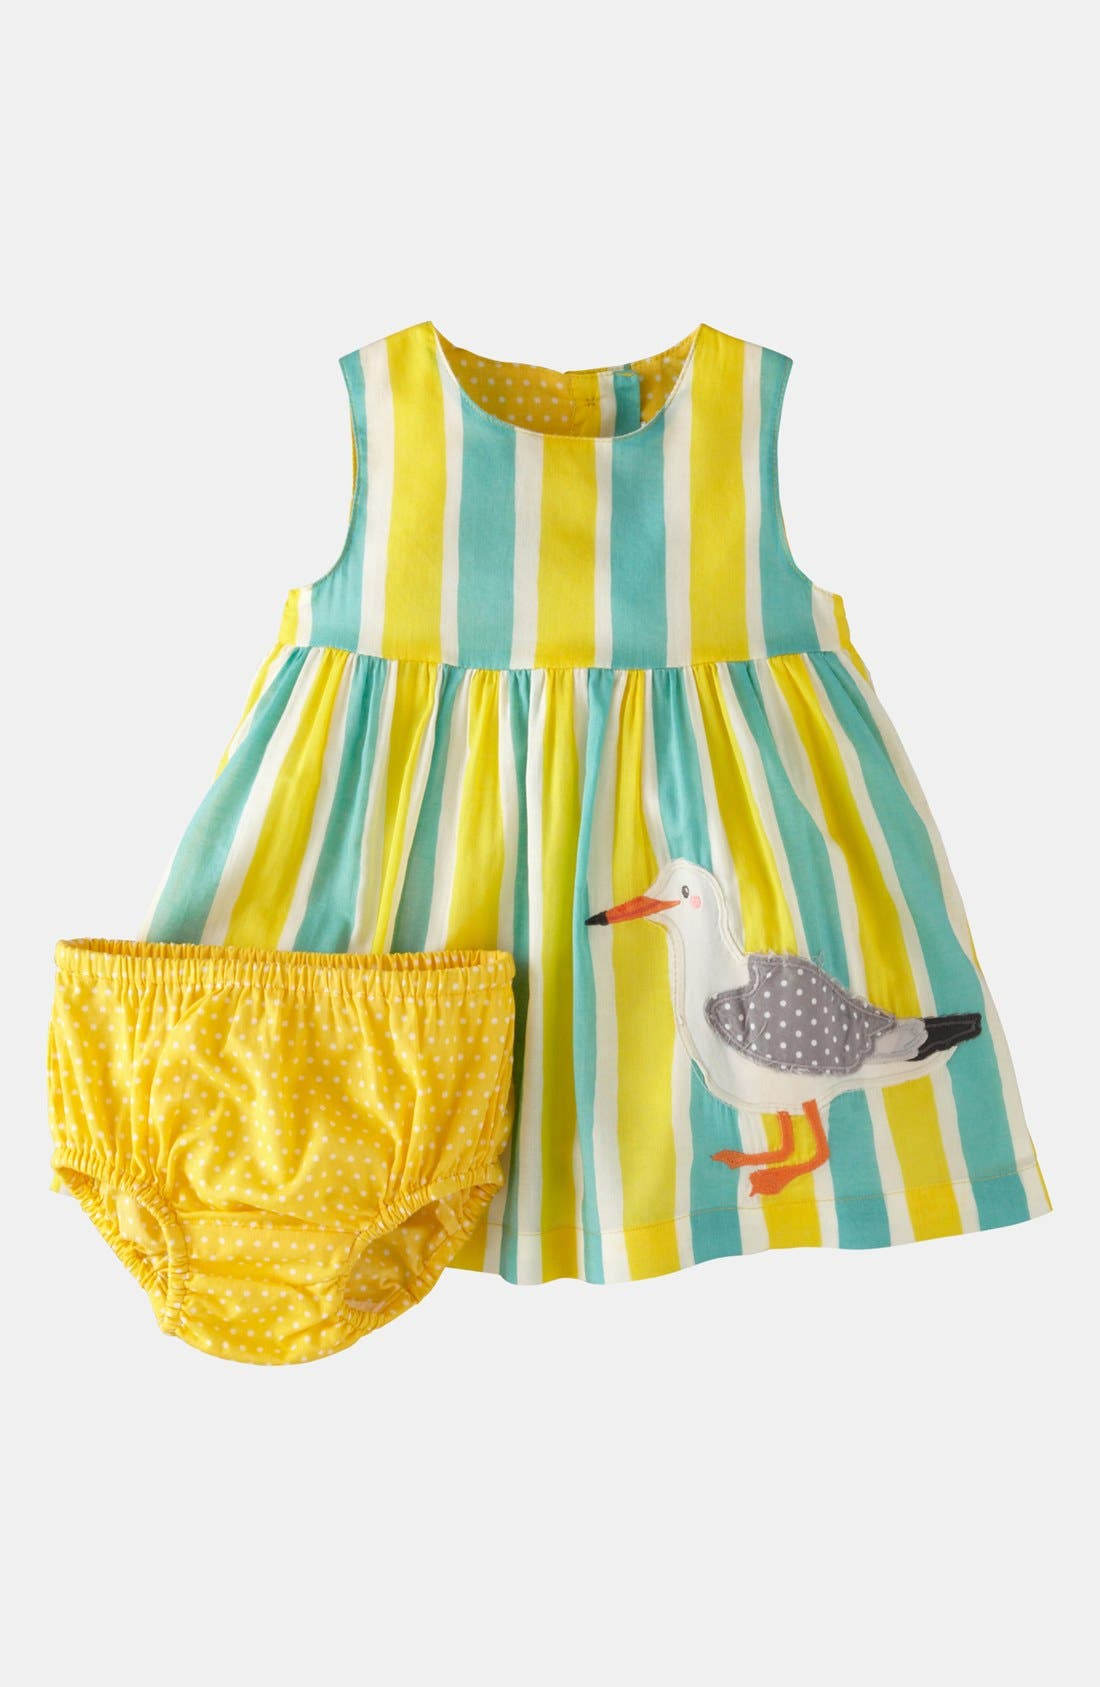 Main Image - Mini Boden 'Printed Appliqué' Dress & Bloomers (Baby)